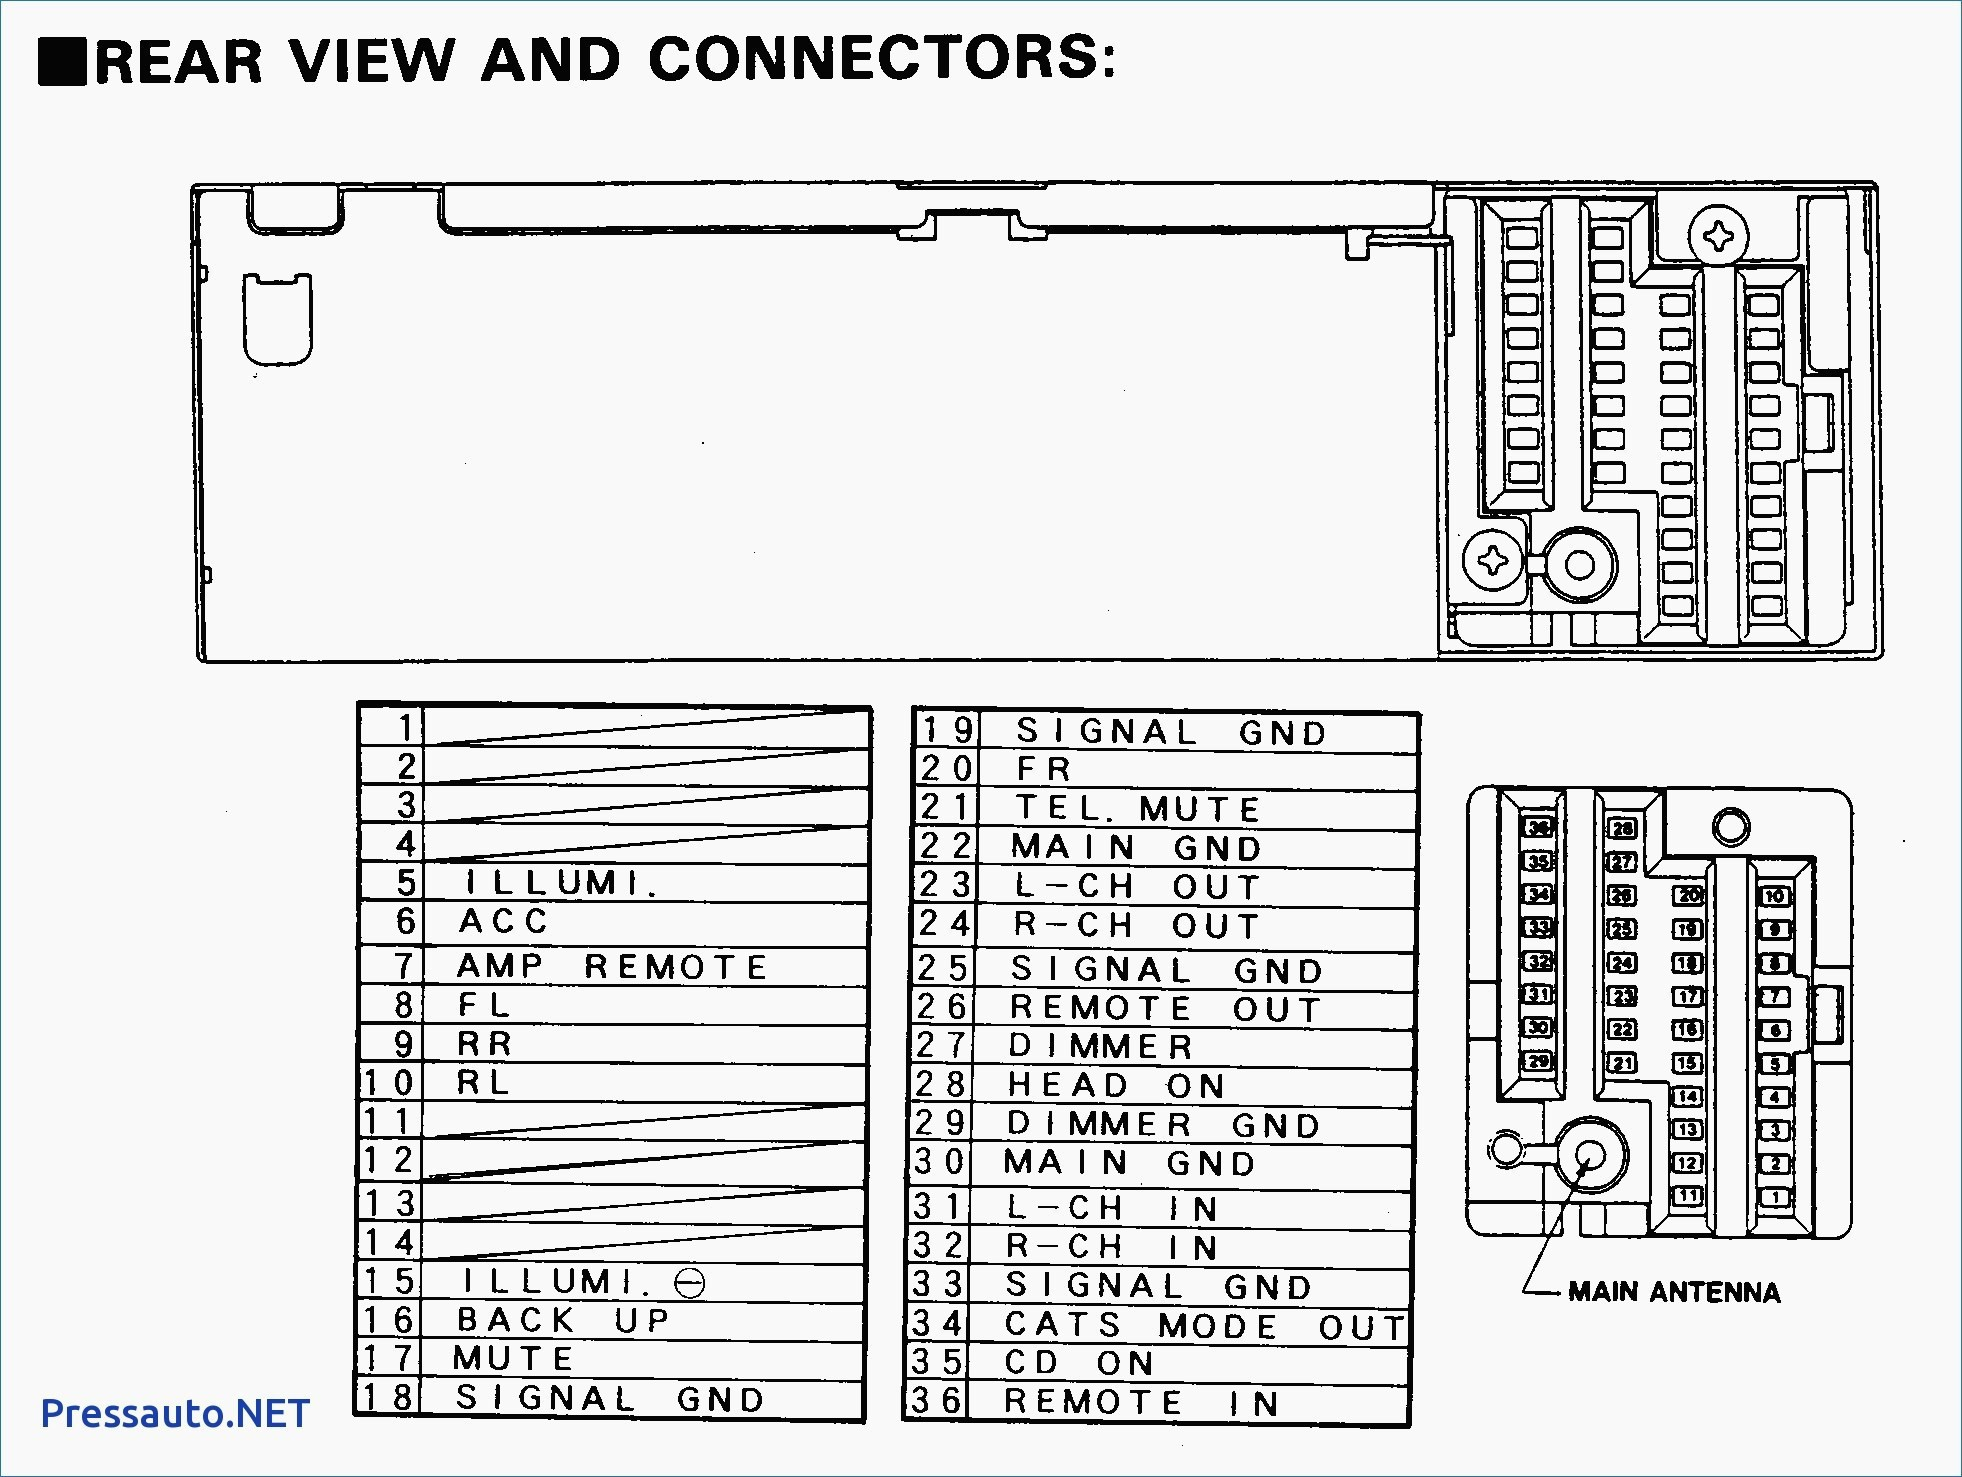 Car sound System Wiring Diagram Wiring Diagram Car Stereo Valid Amplifier Wiring Diagram Of Car sound System Wiring Diagram